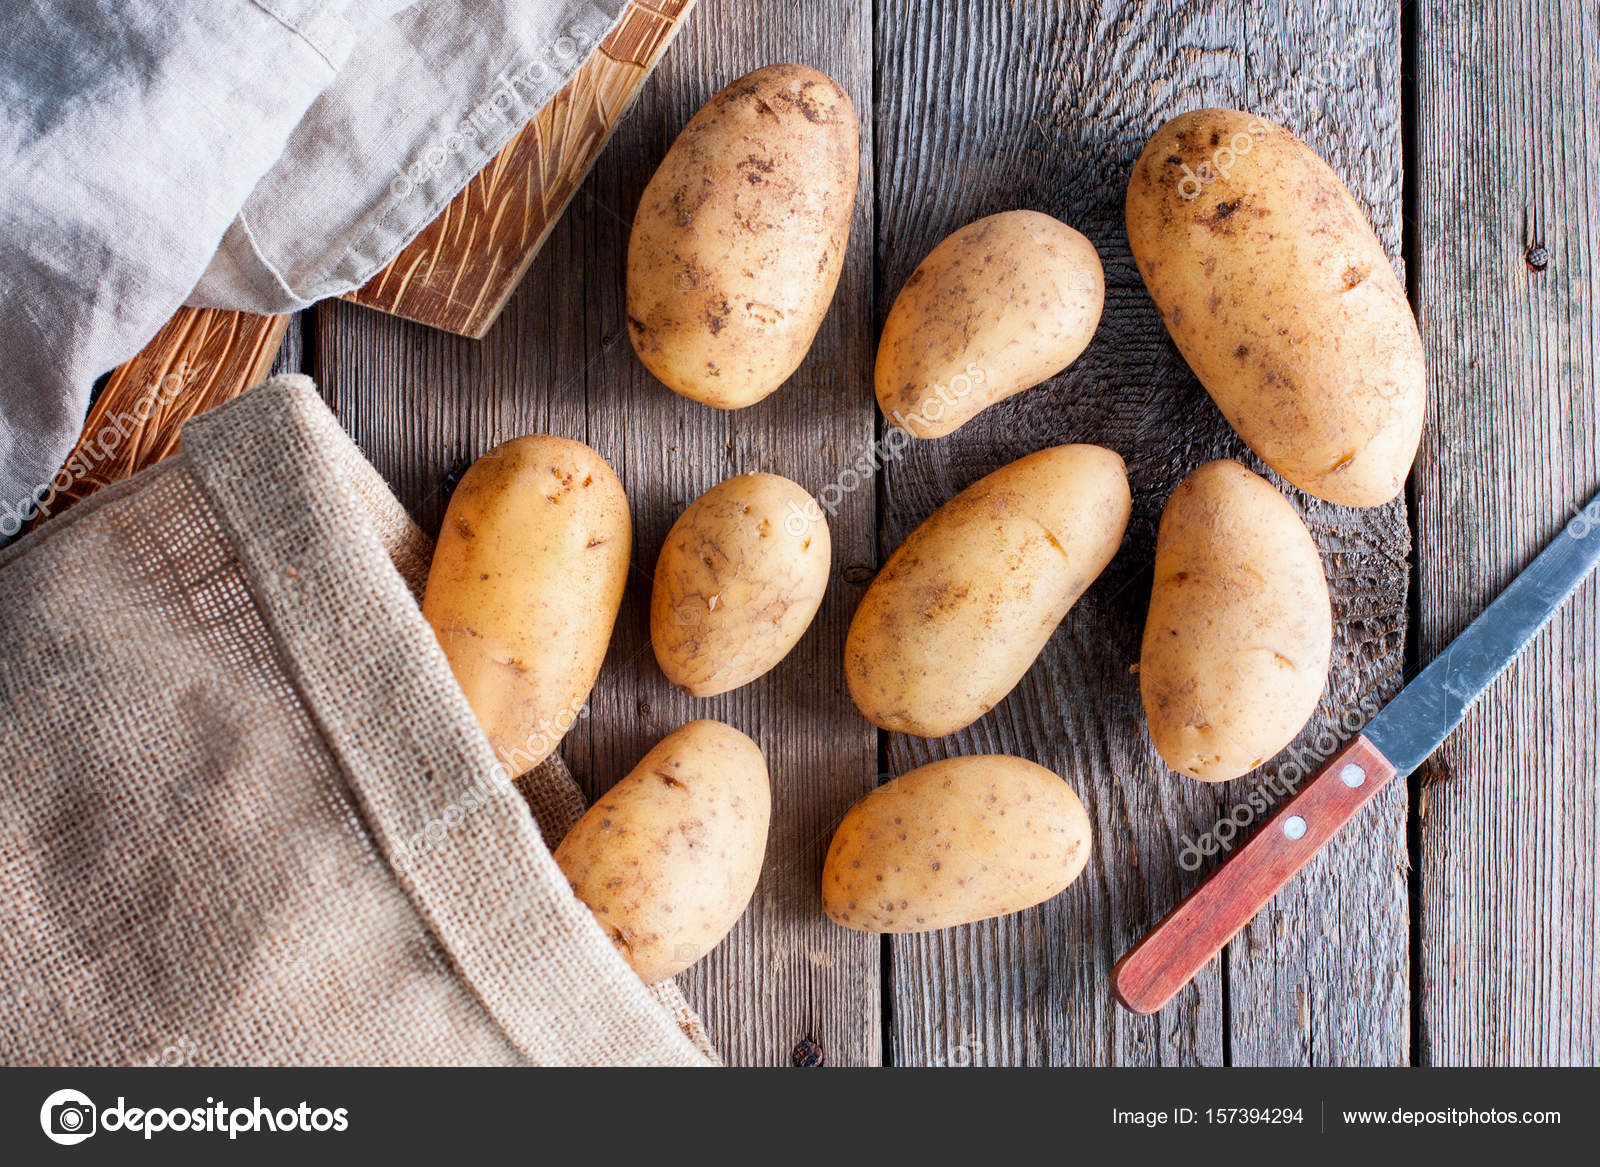 Young Raw Fresh Potatoes On A Wooden Table, Top View U2014 Stock Photo